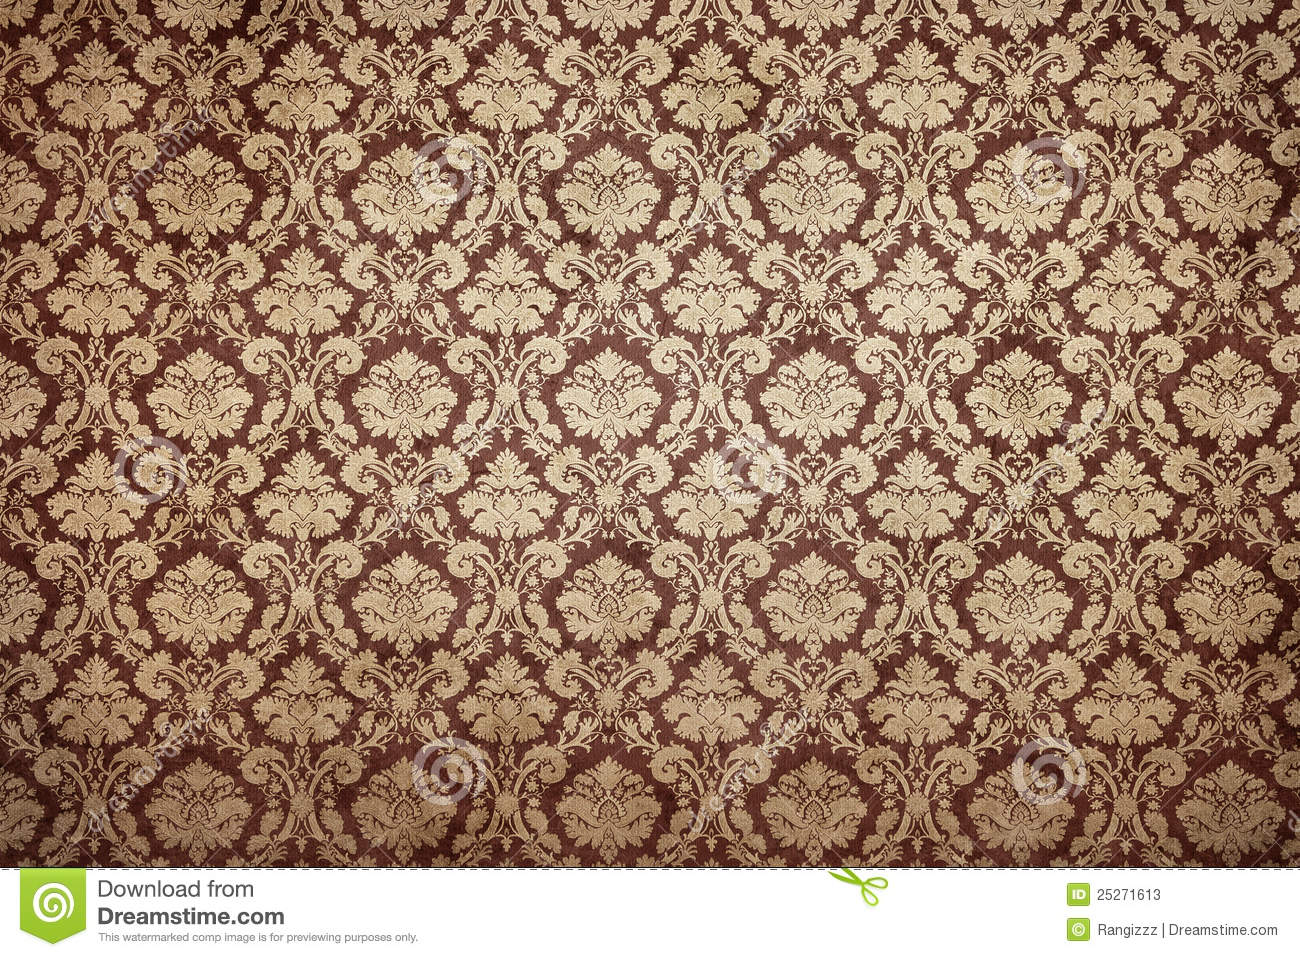 Fundo decorativo do papel de parede fotos de stock for Papel de pared decorativo